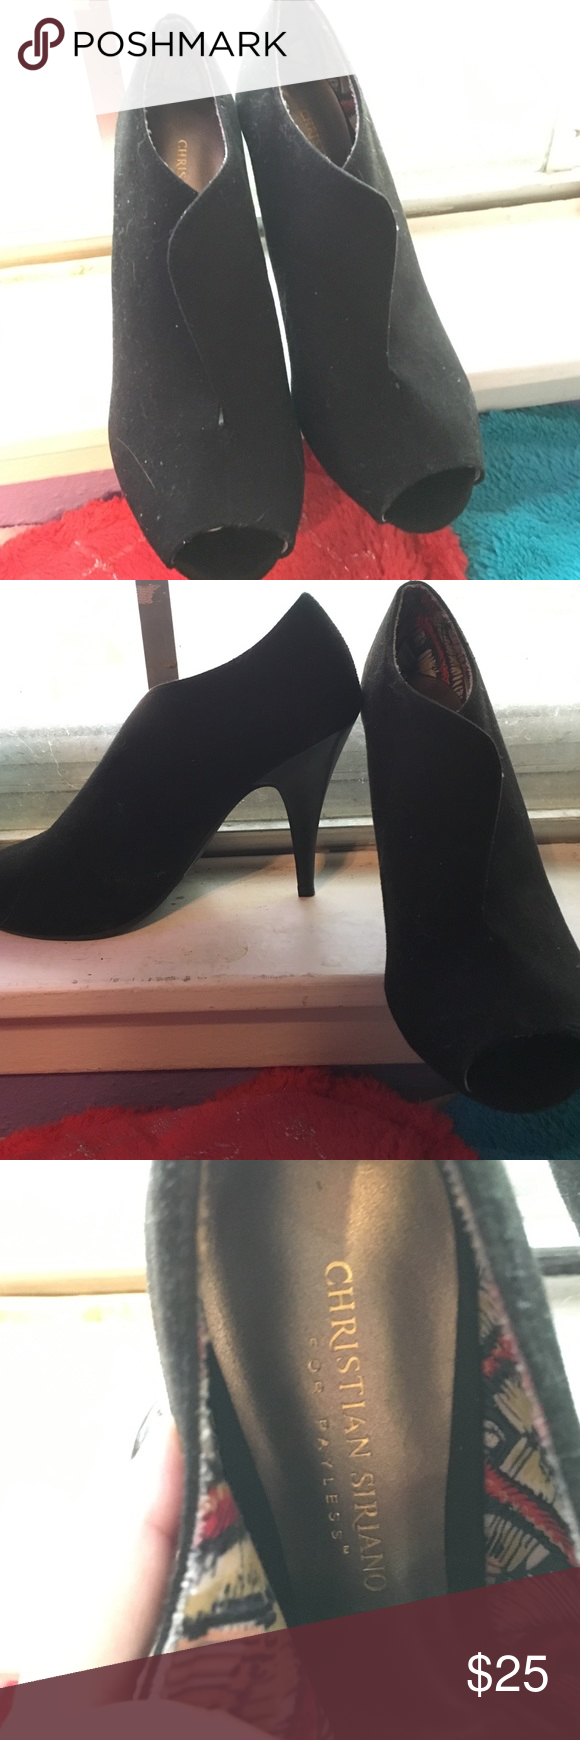 Black open toe stilettos Worn few times. Perfect for a night out very comfortable Christian Siriano Shoes Heels